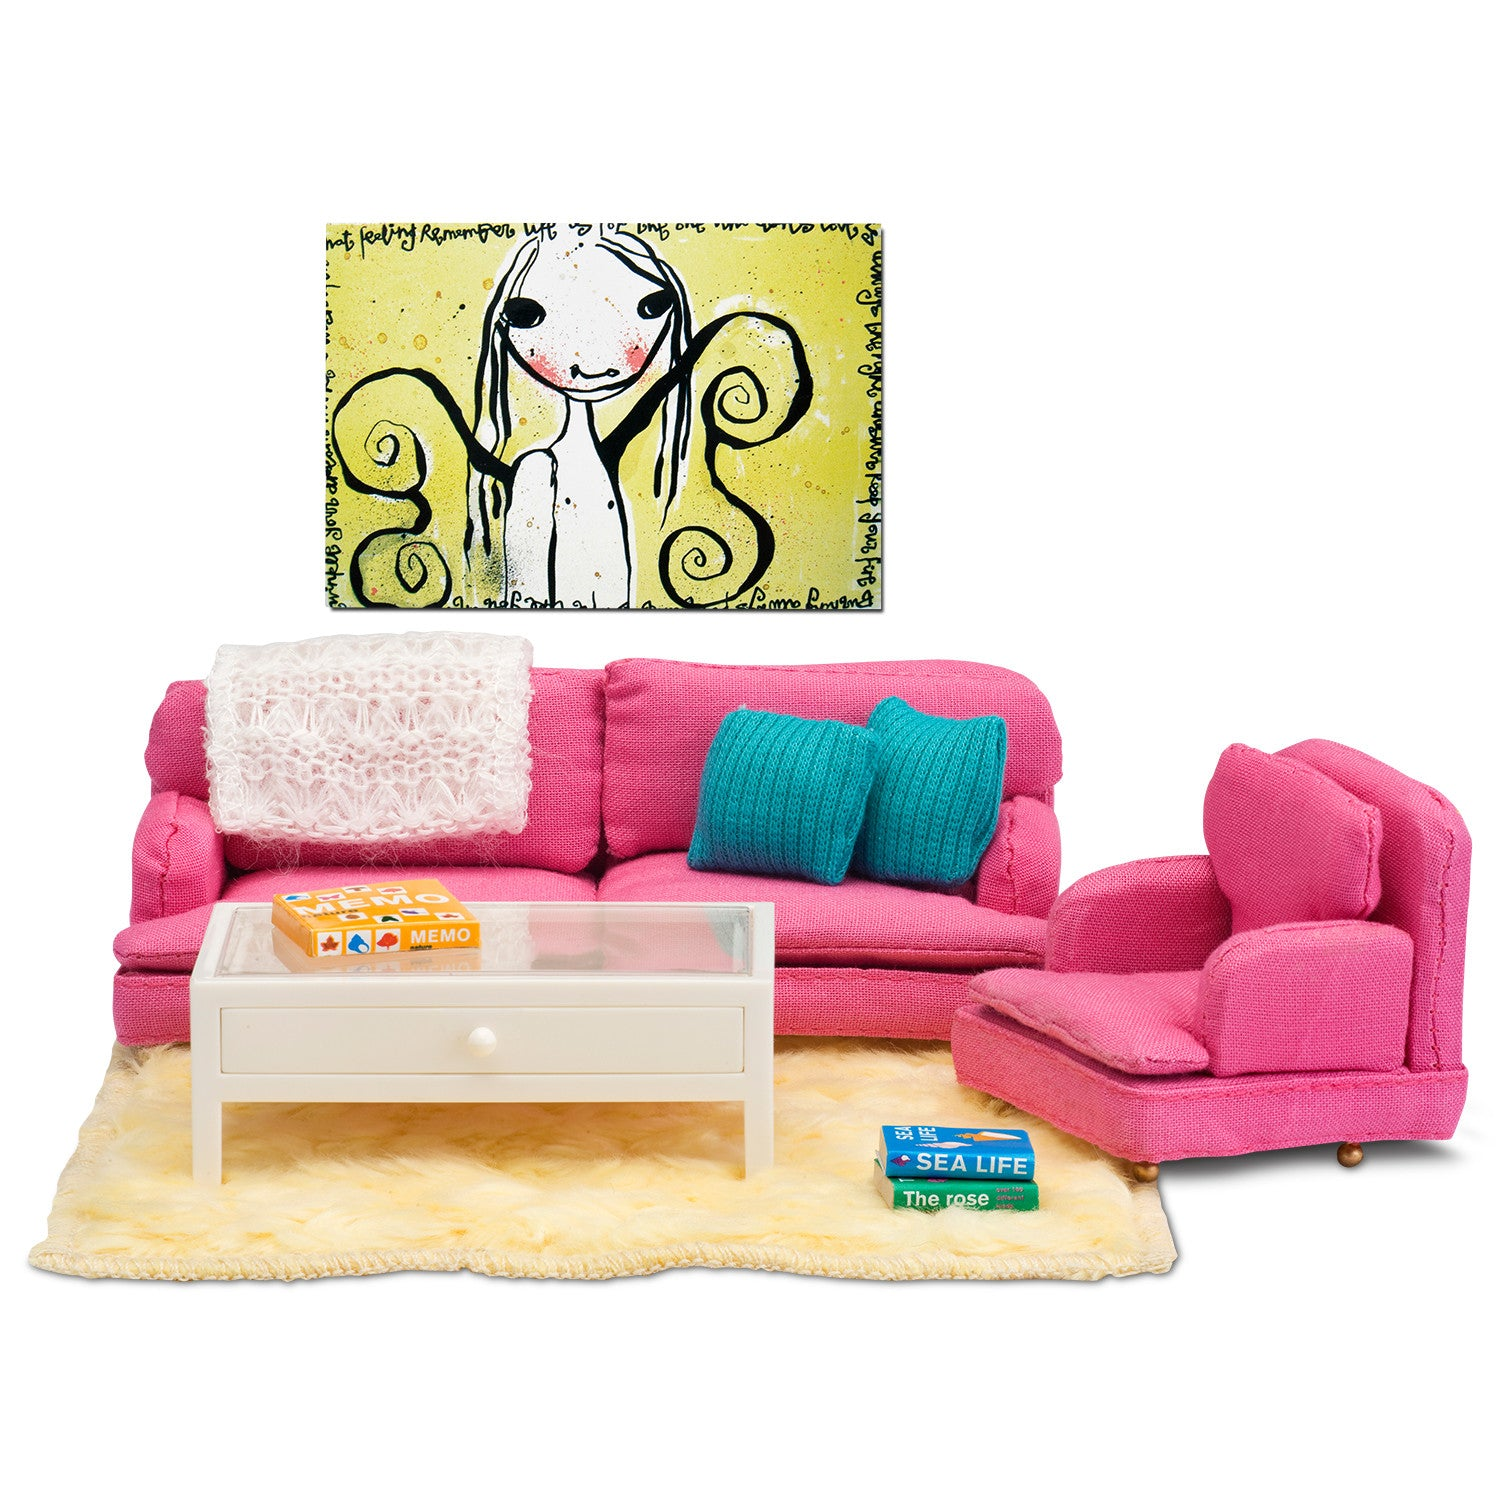 Pink Living Room Set By Smaland   Little Citizens Boutique   1